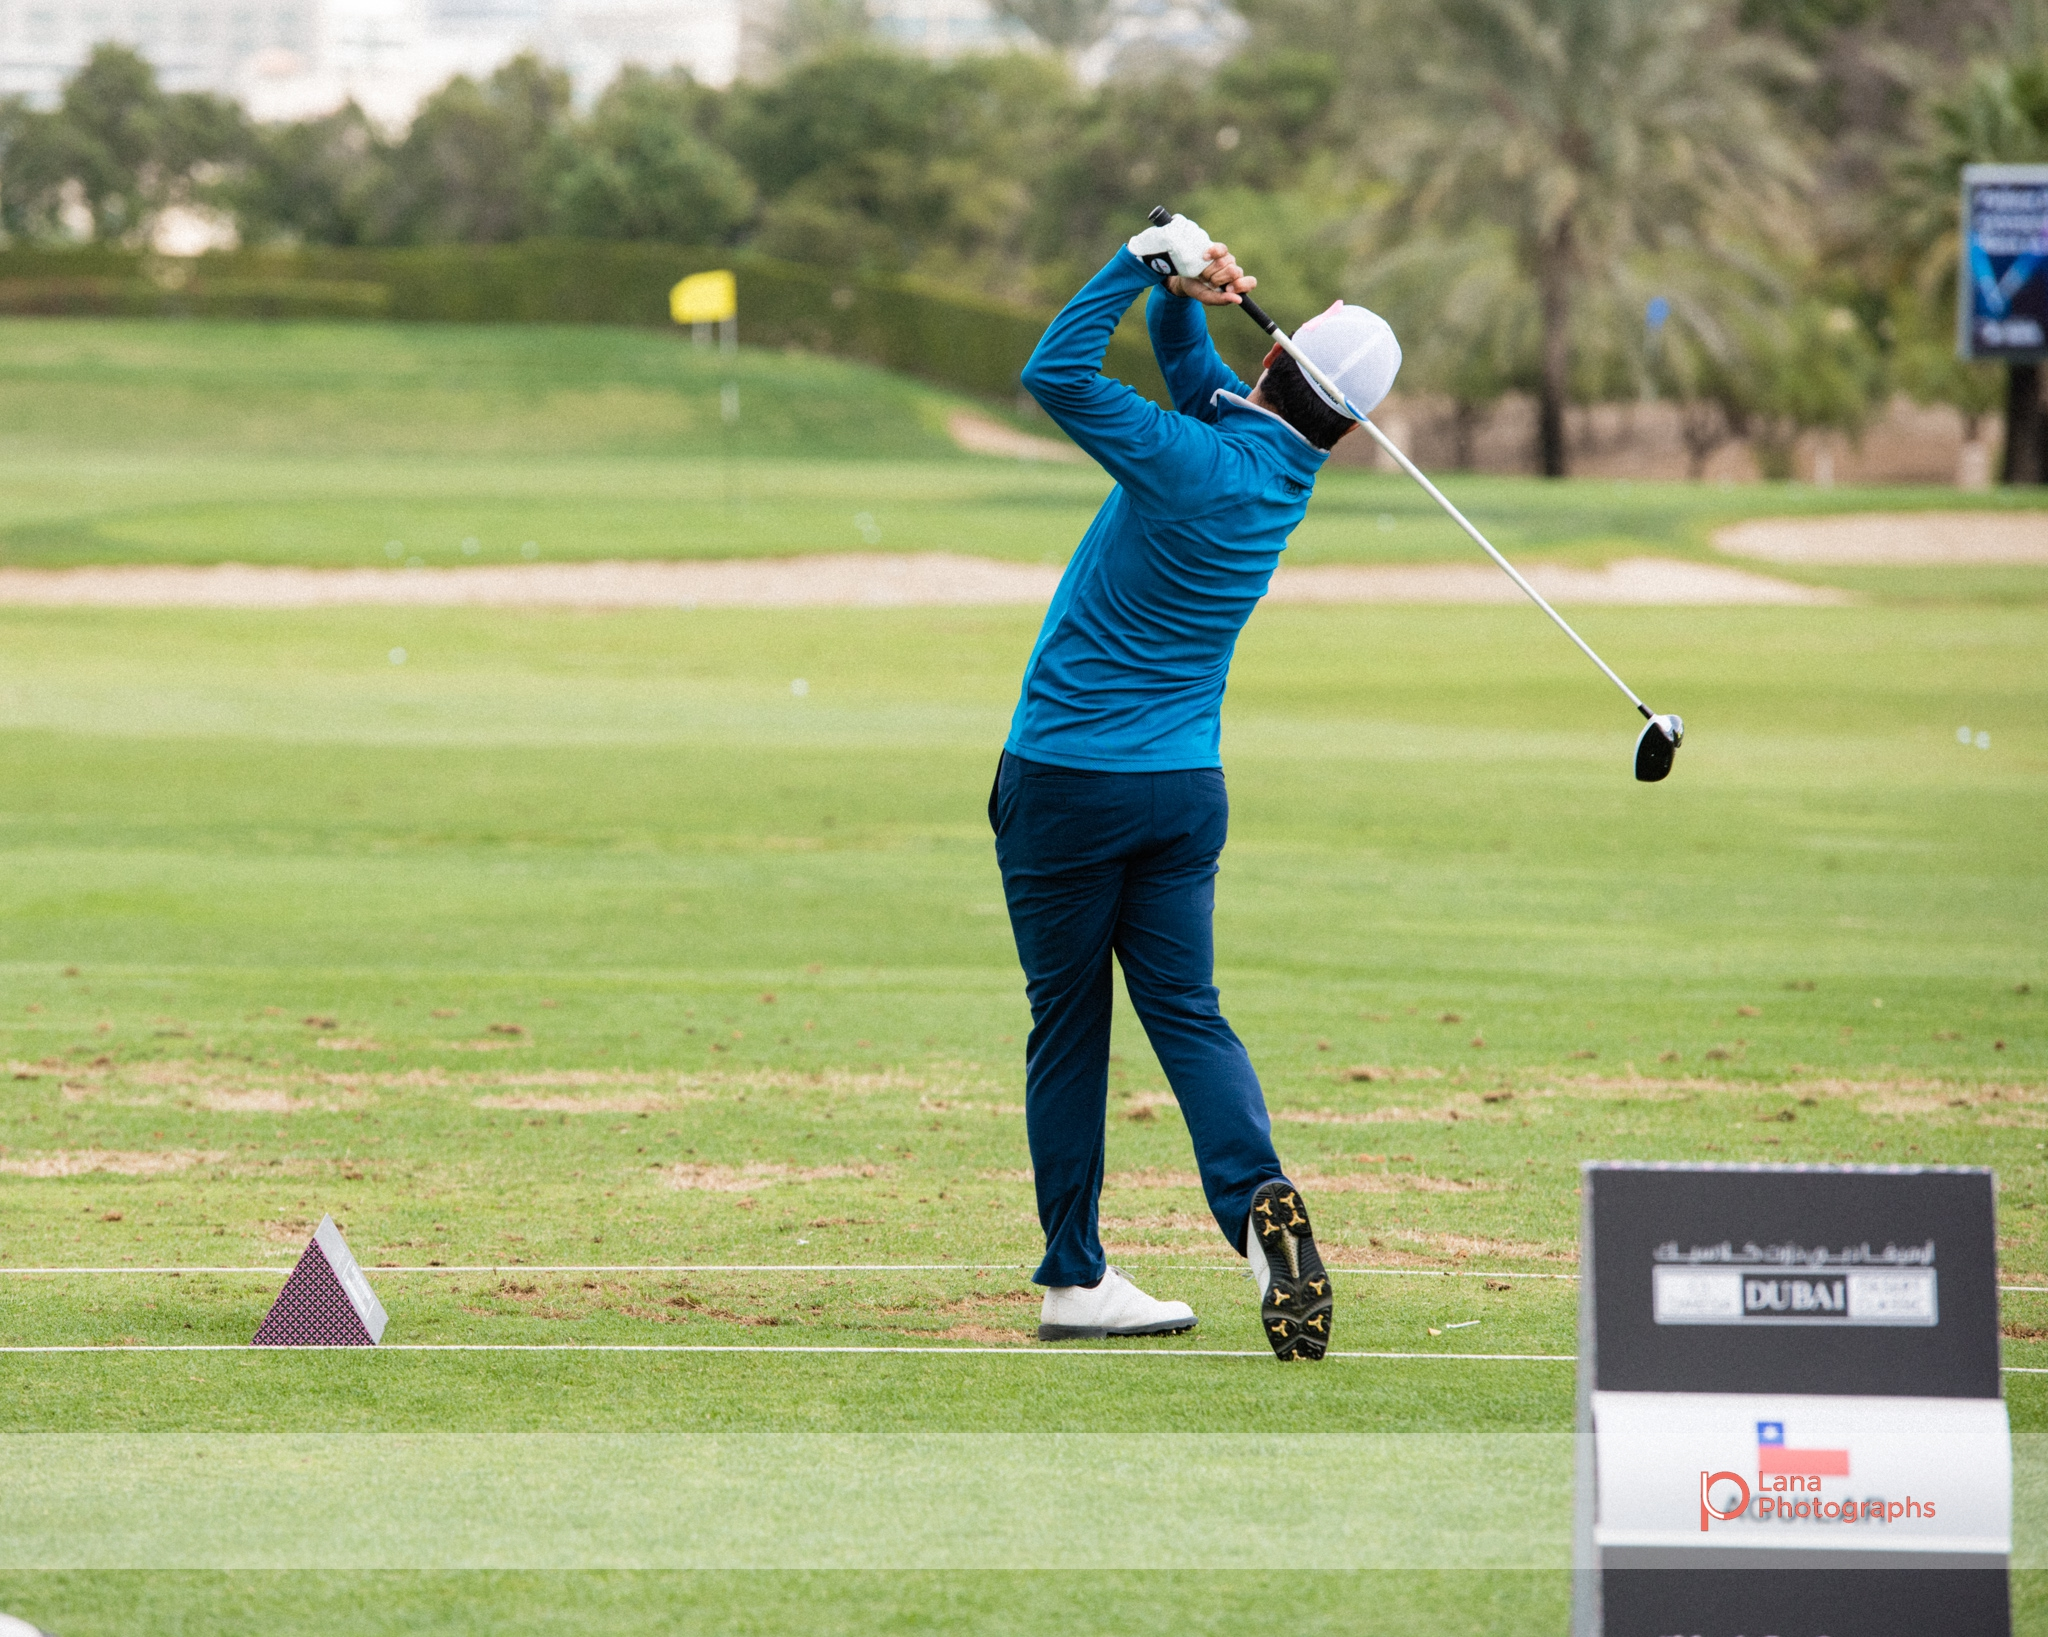 Grégory HAVRET   swings as he practices at the golfing range during the Omega Dubai Desert Classic in Dubai February 2017